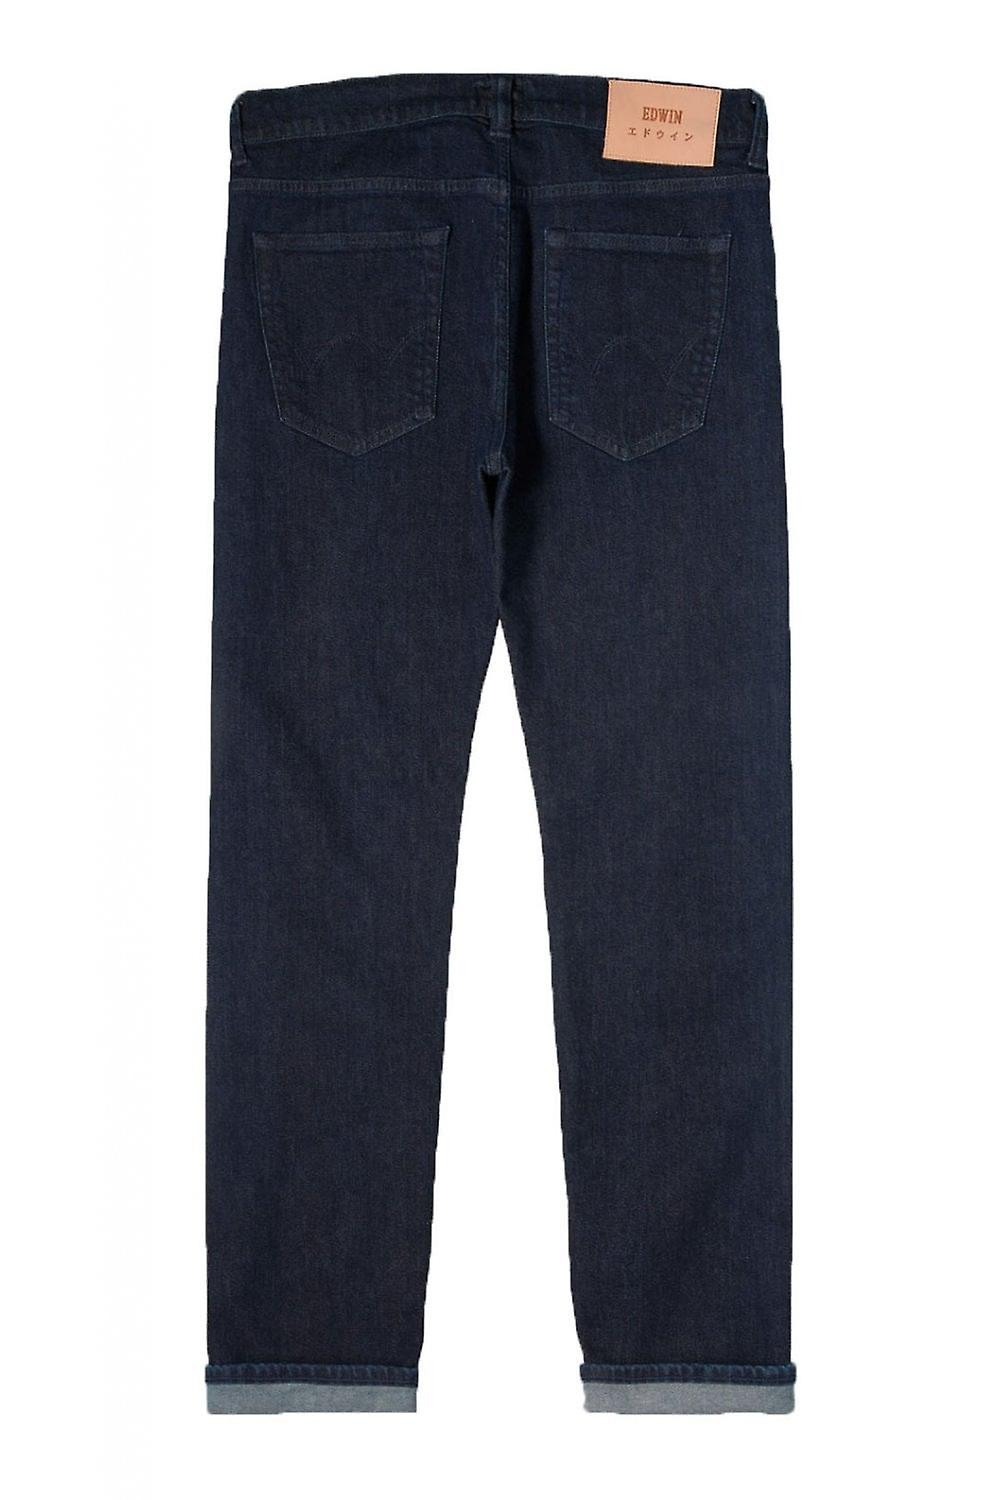 Edwin ED-80 Slim Tapered Red Listed Selvage Jeans (Blue Rinsed)